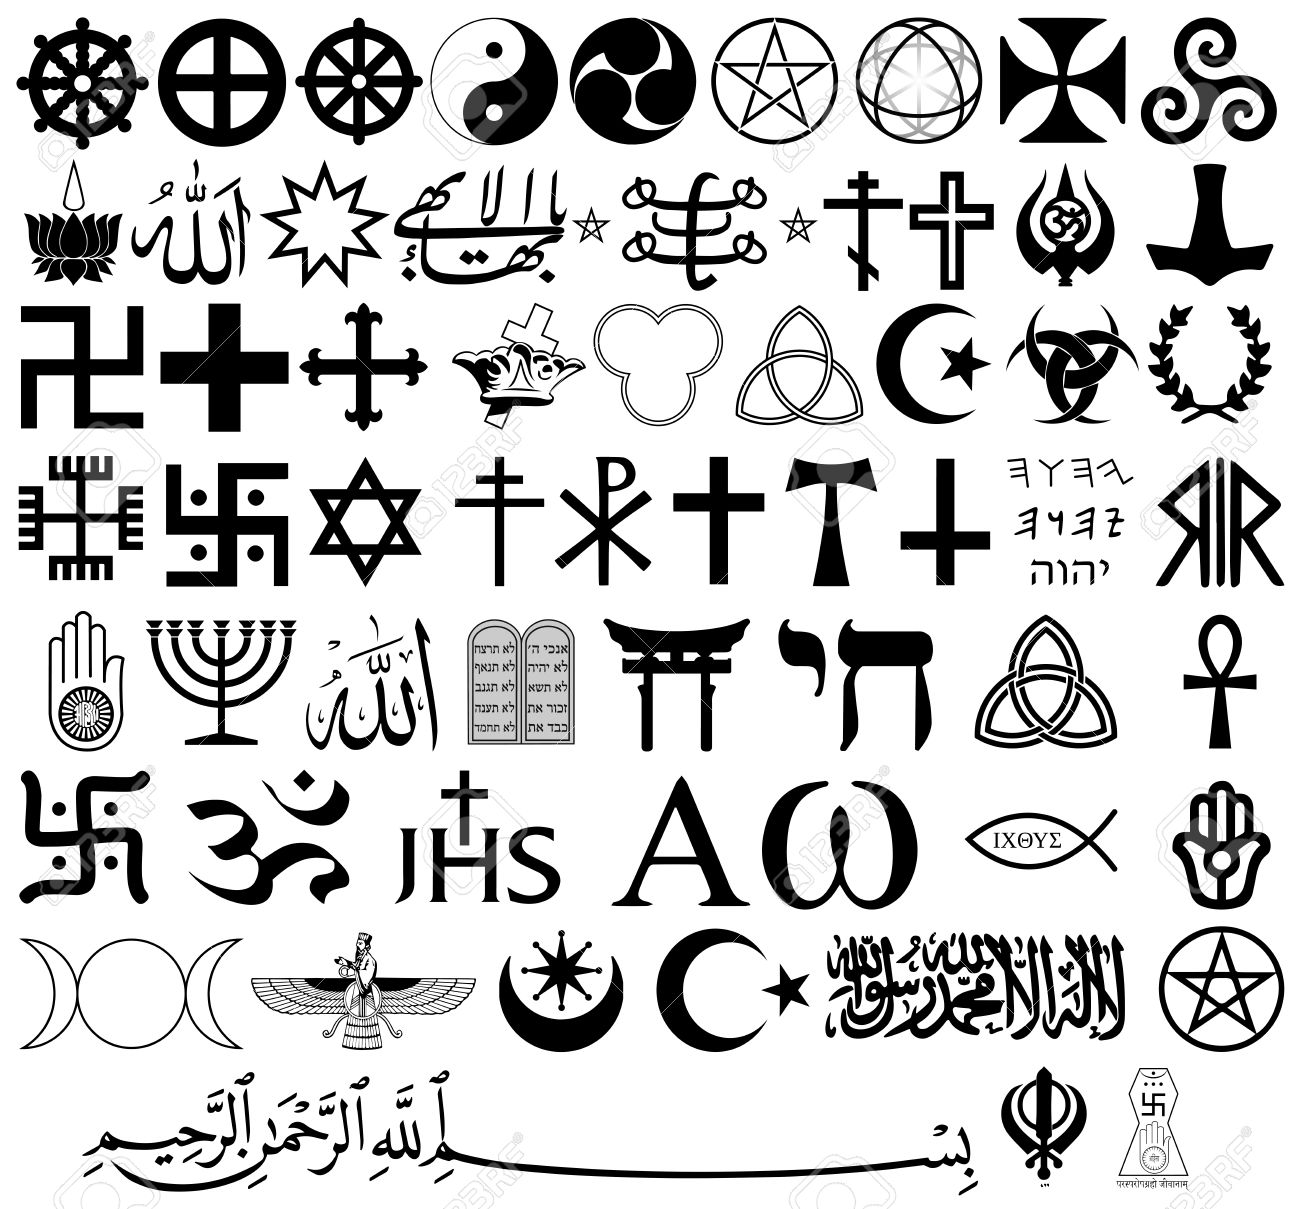 Fileworldreligionspng wikimedia commons world religions what are religious symbols from the top organised faiths of the world top religions in the world biocorpaavc Choice Image